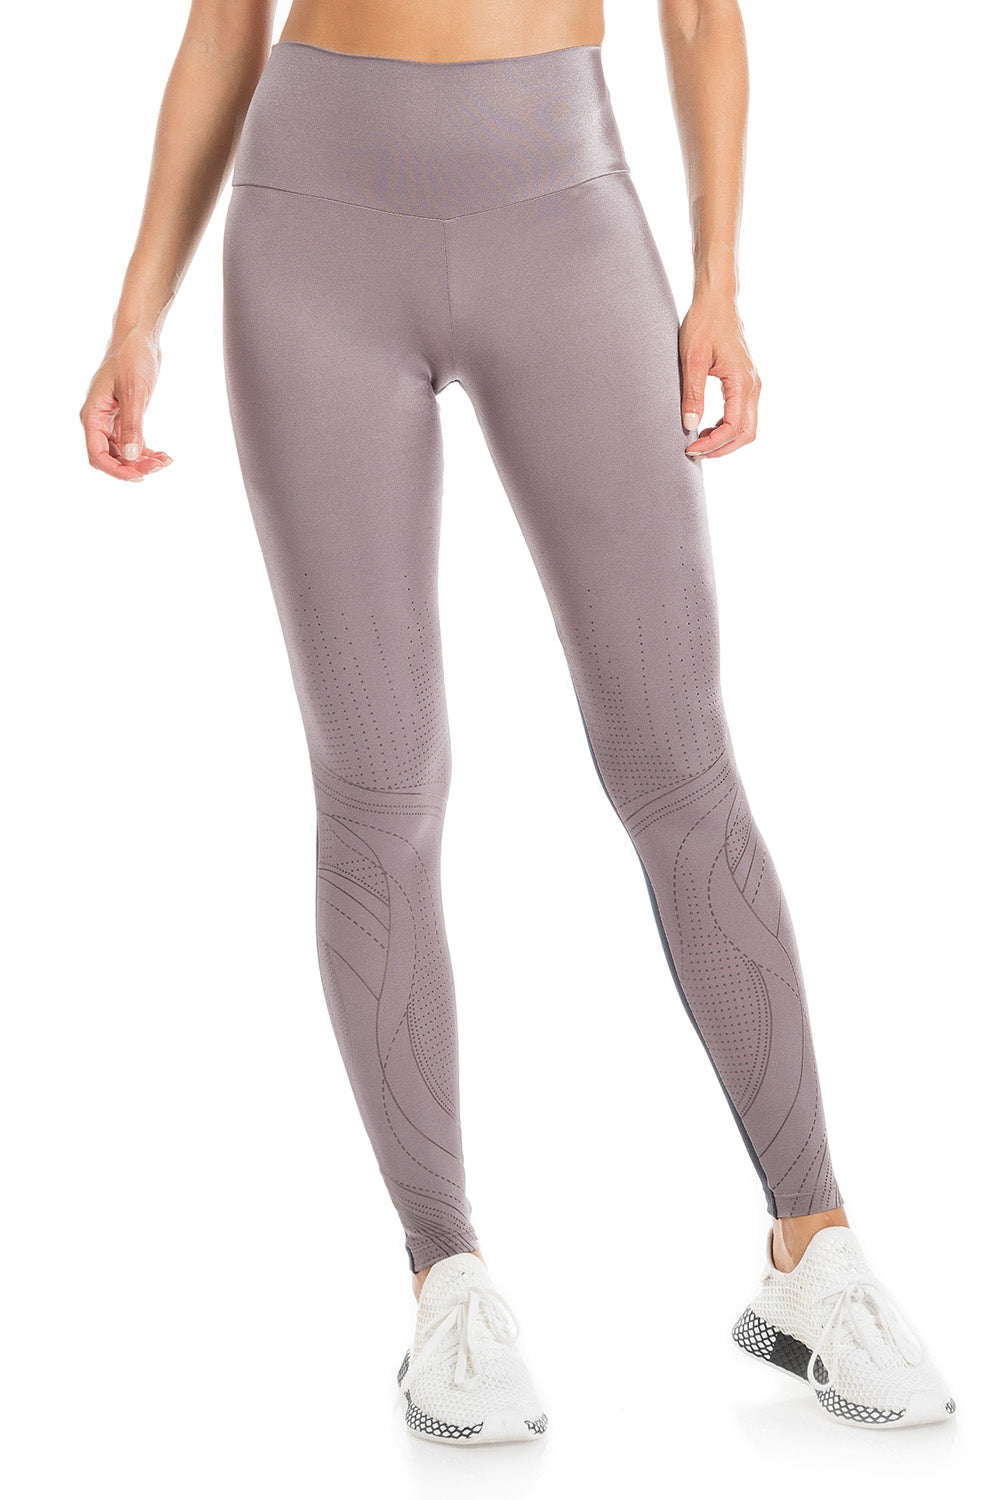 Next Sight Legging 1